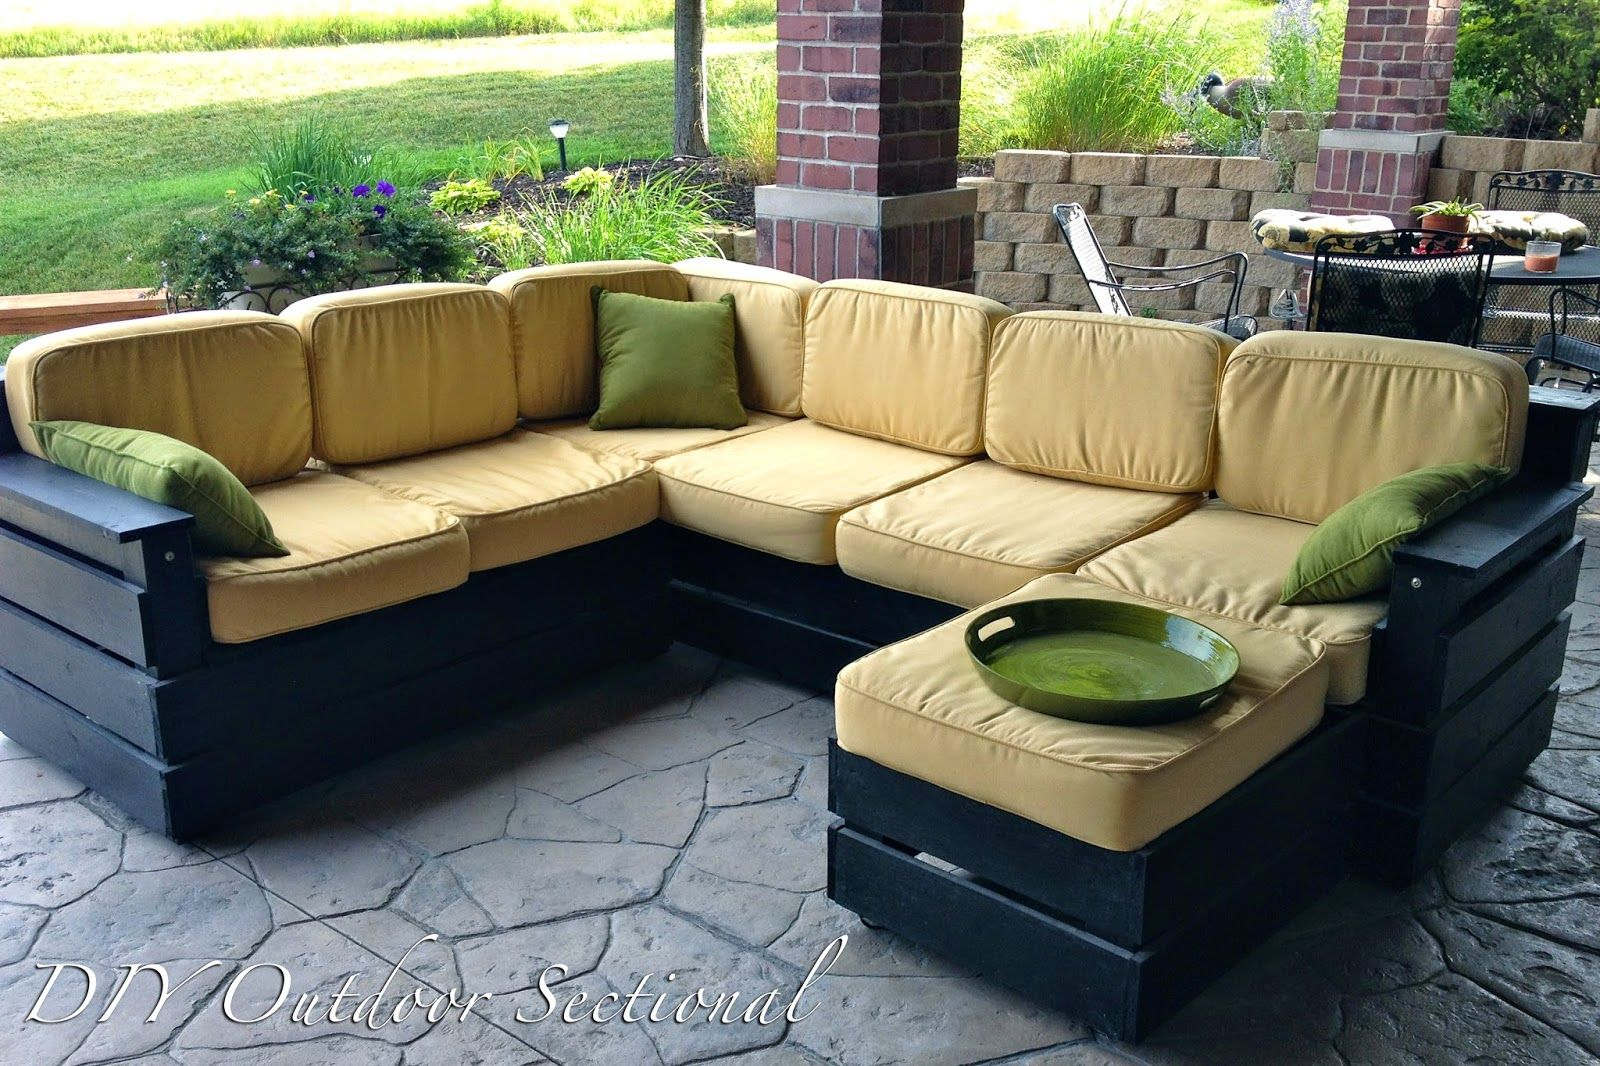 DIY Outdoor Sectional Build it yourself out of regular wood from a